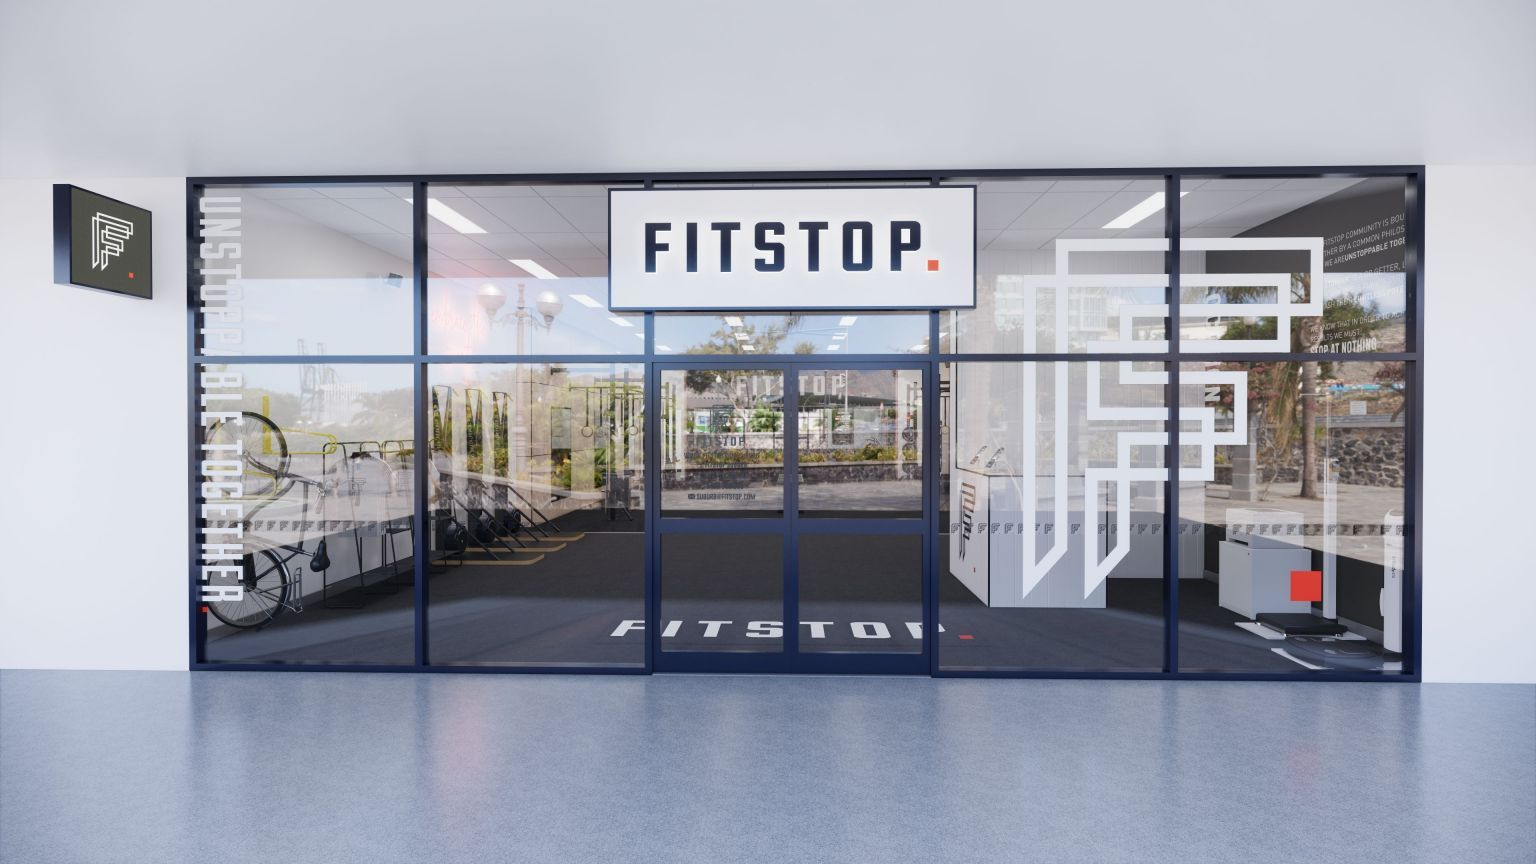 Fitstop launches in New Zealand   Inside Franchise Business Executive